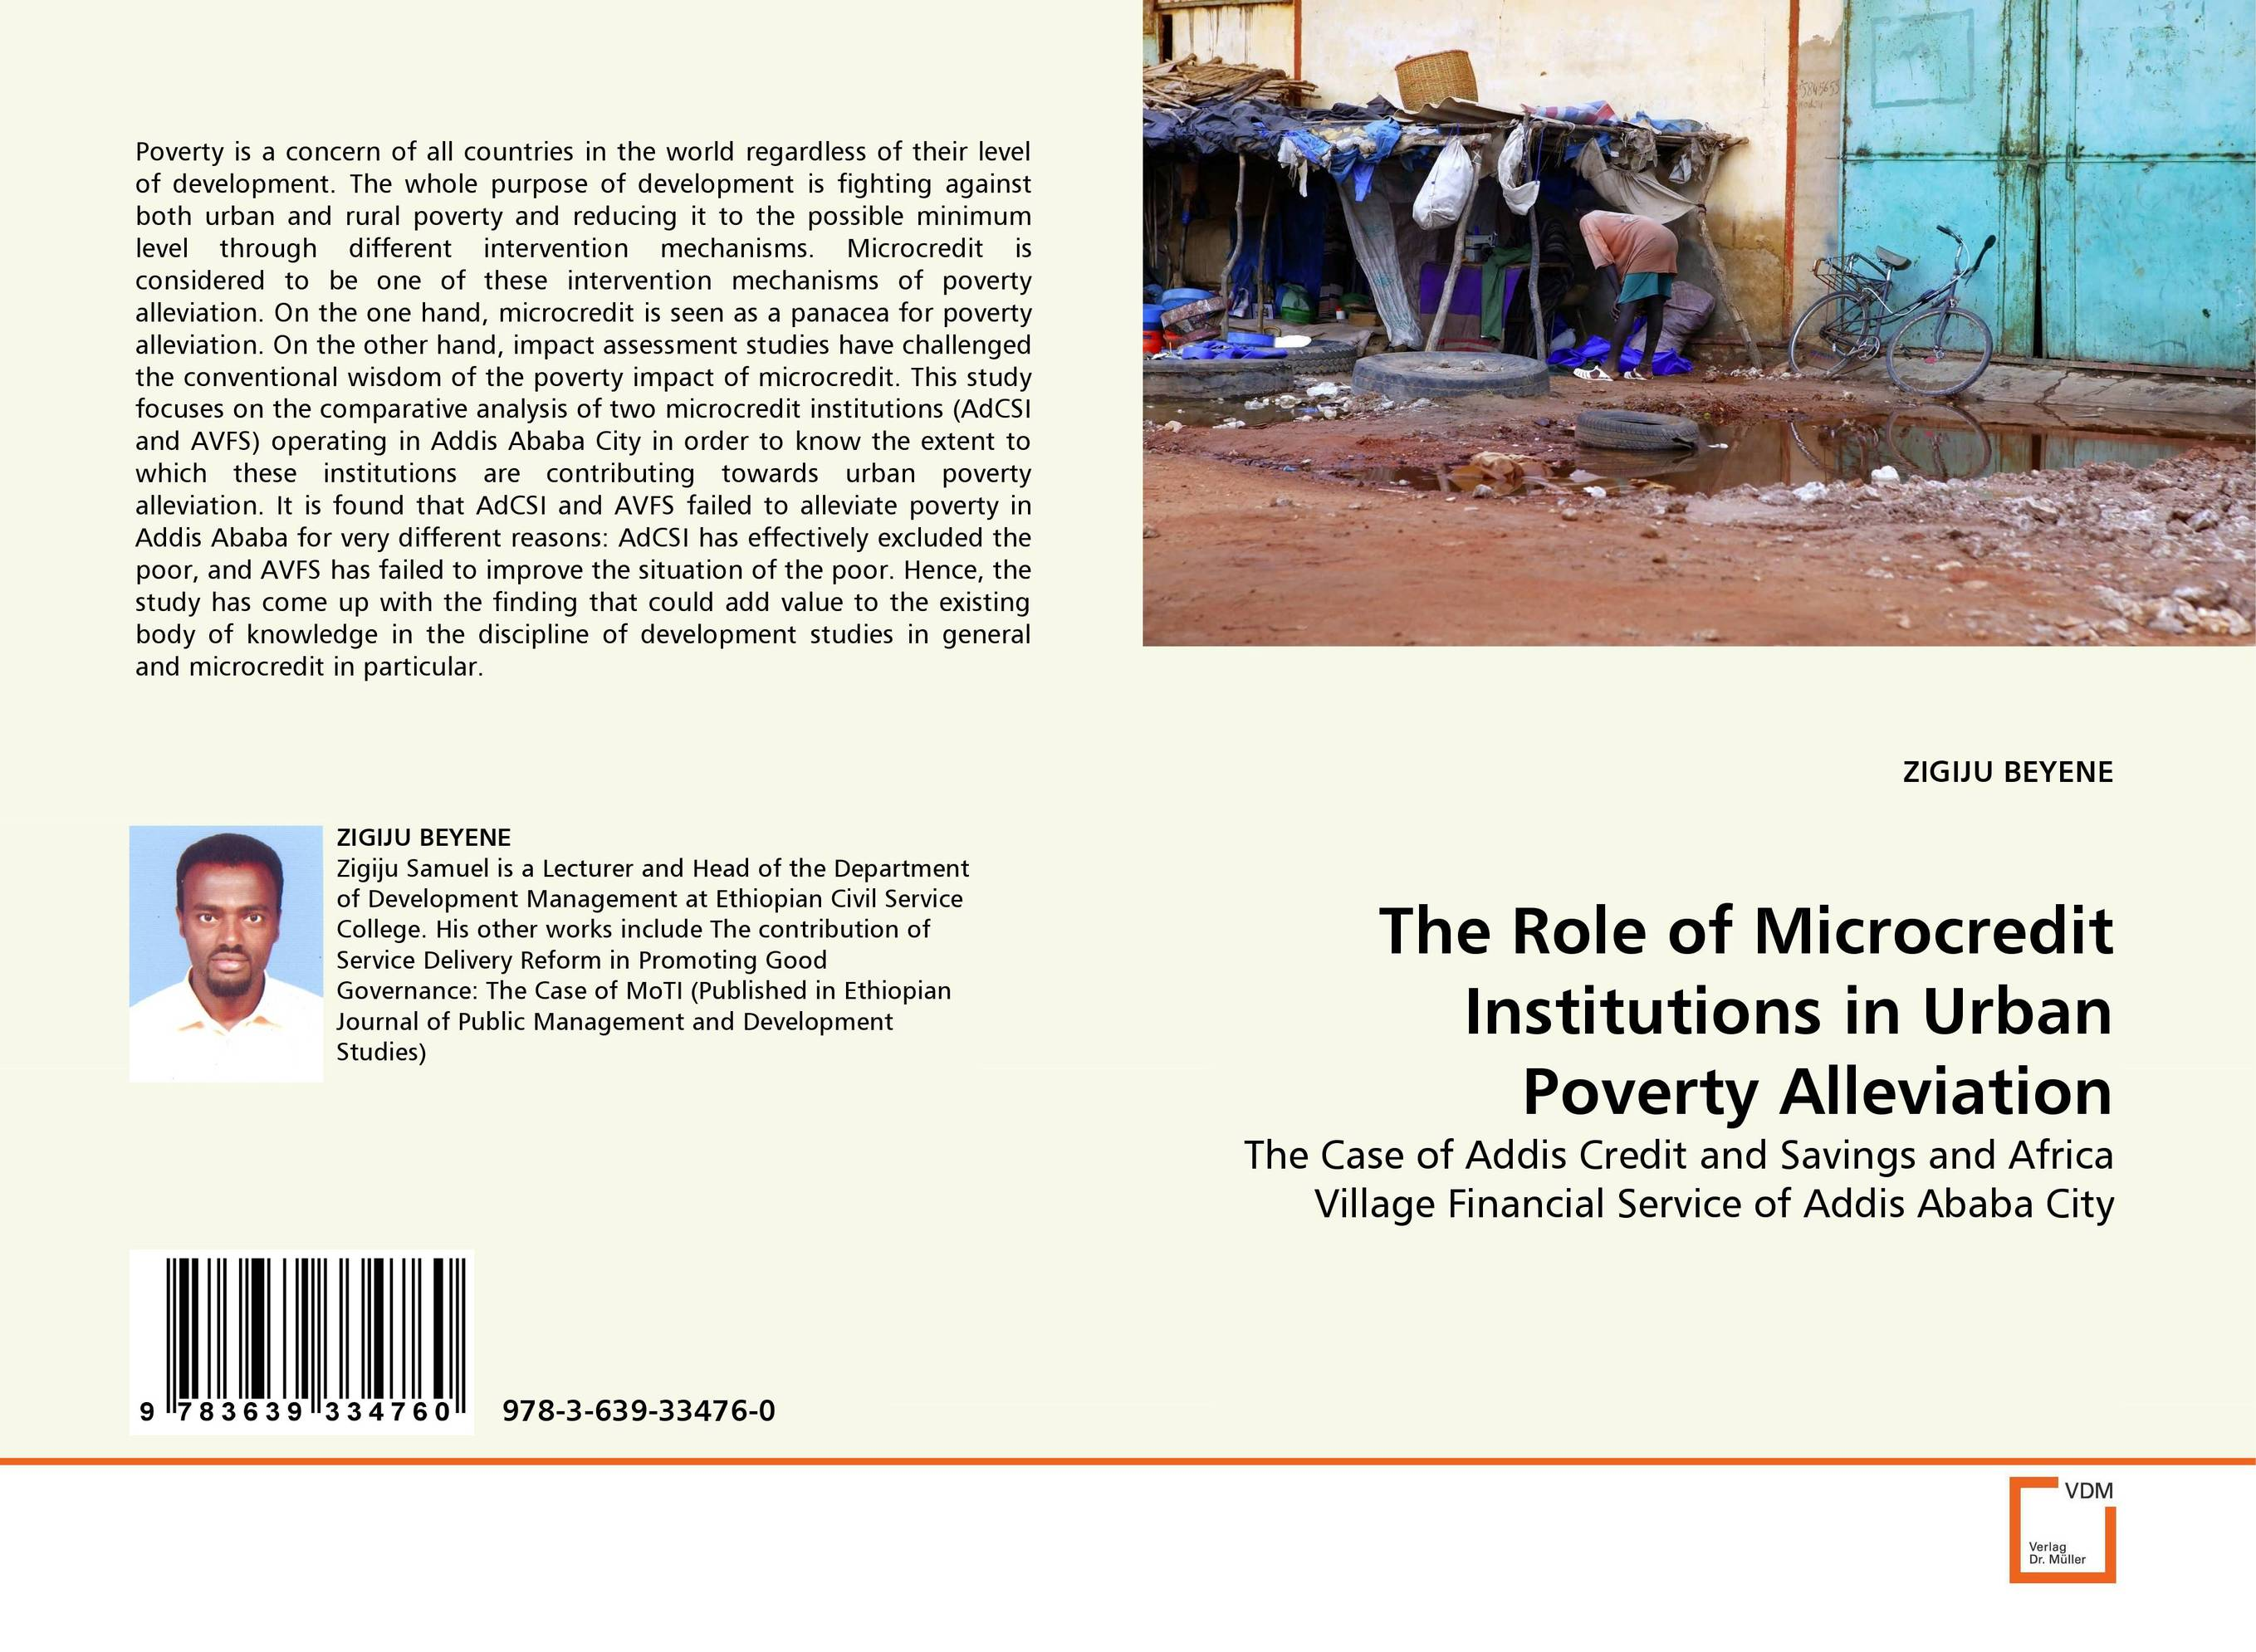 The Role of Microcredit Institutions in Urban Poverty Alleviation